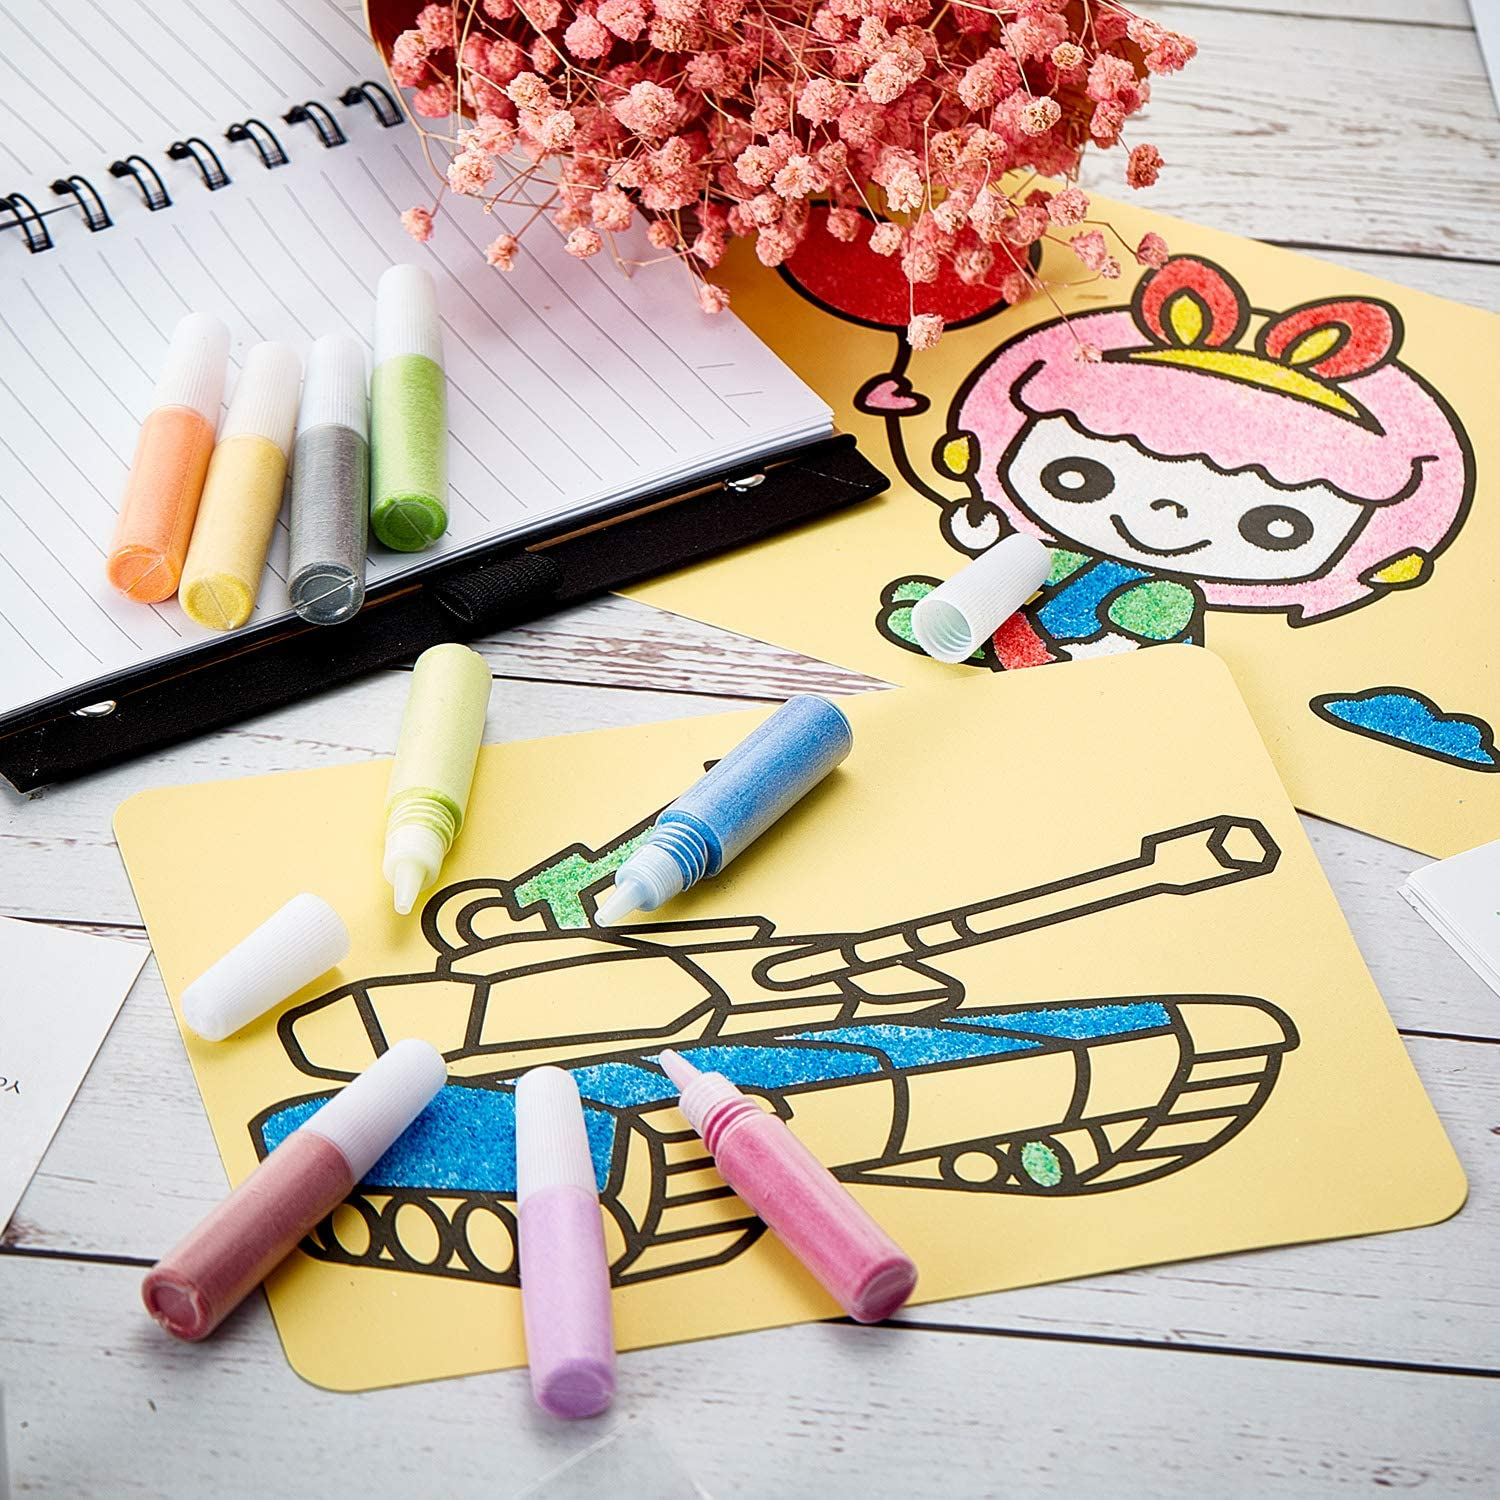 Sand Art Kits Includes 15 Sheets Sand Art Painting Cards Sand Coloring Drawing Cards Sand DIY Craft Picture Card and 12 Pieces Colored Sand Art Craft Bottles